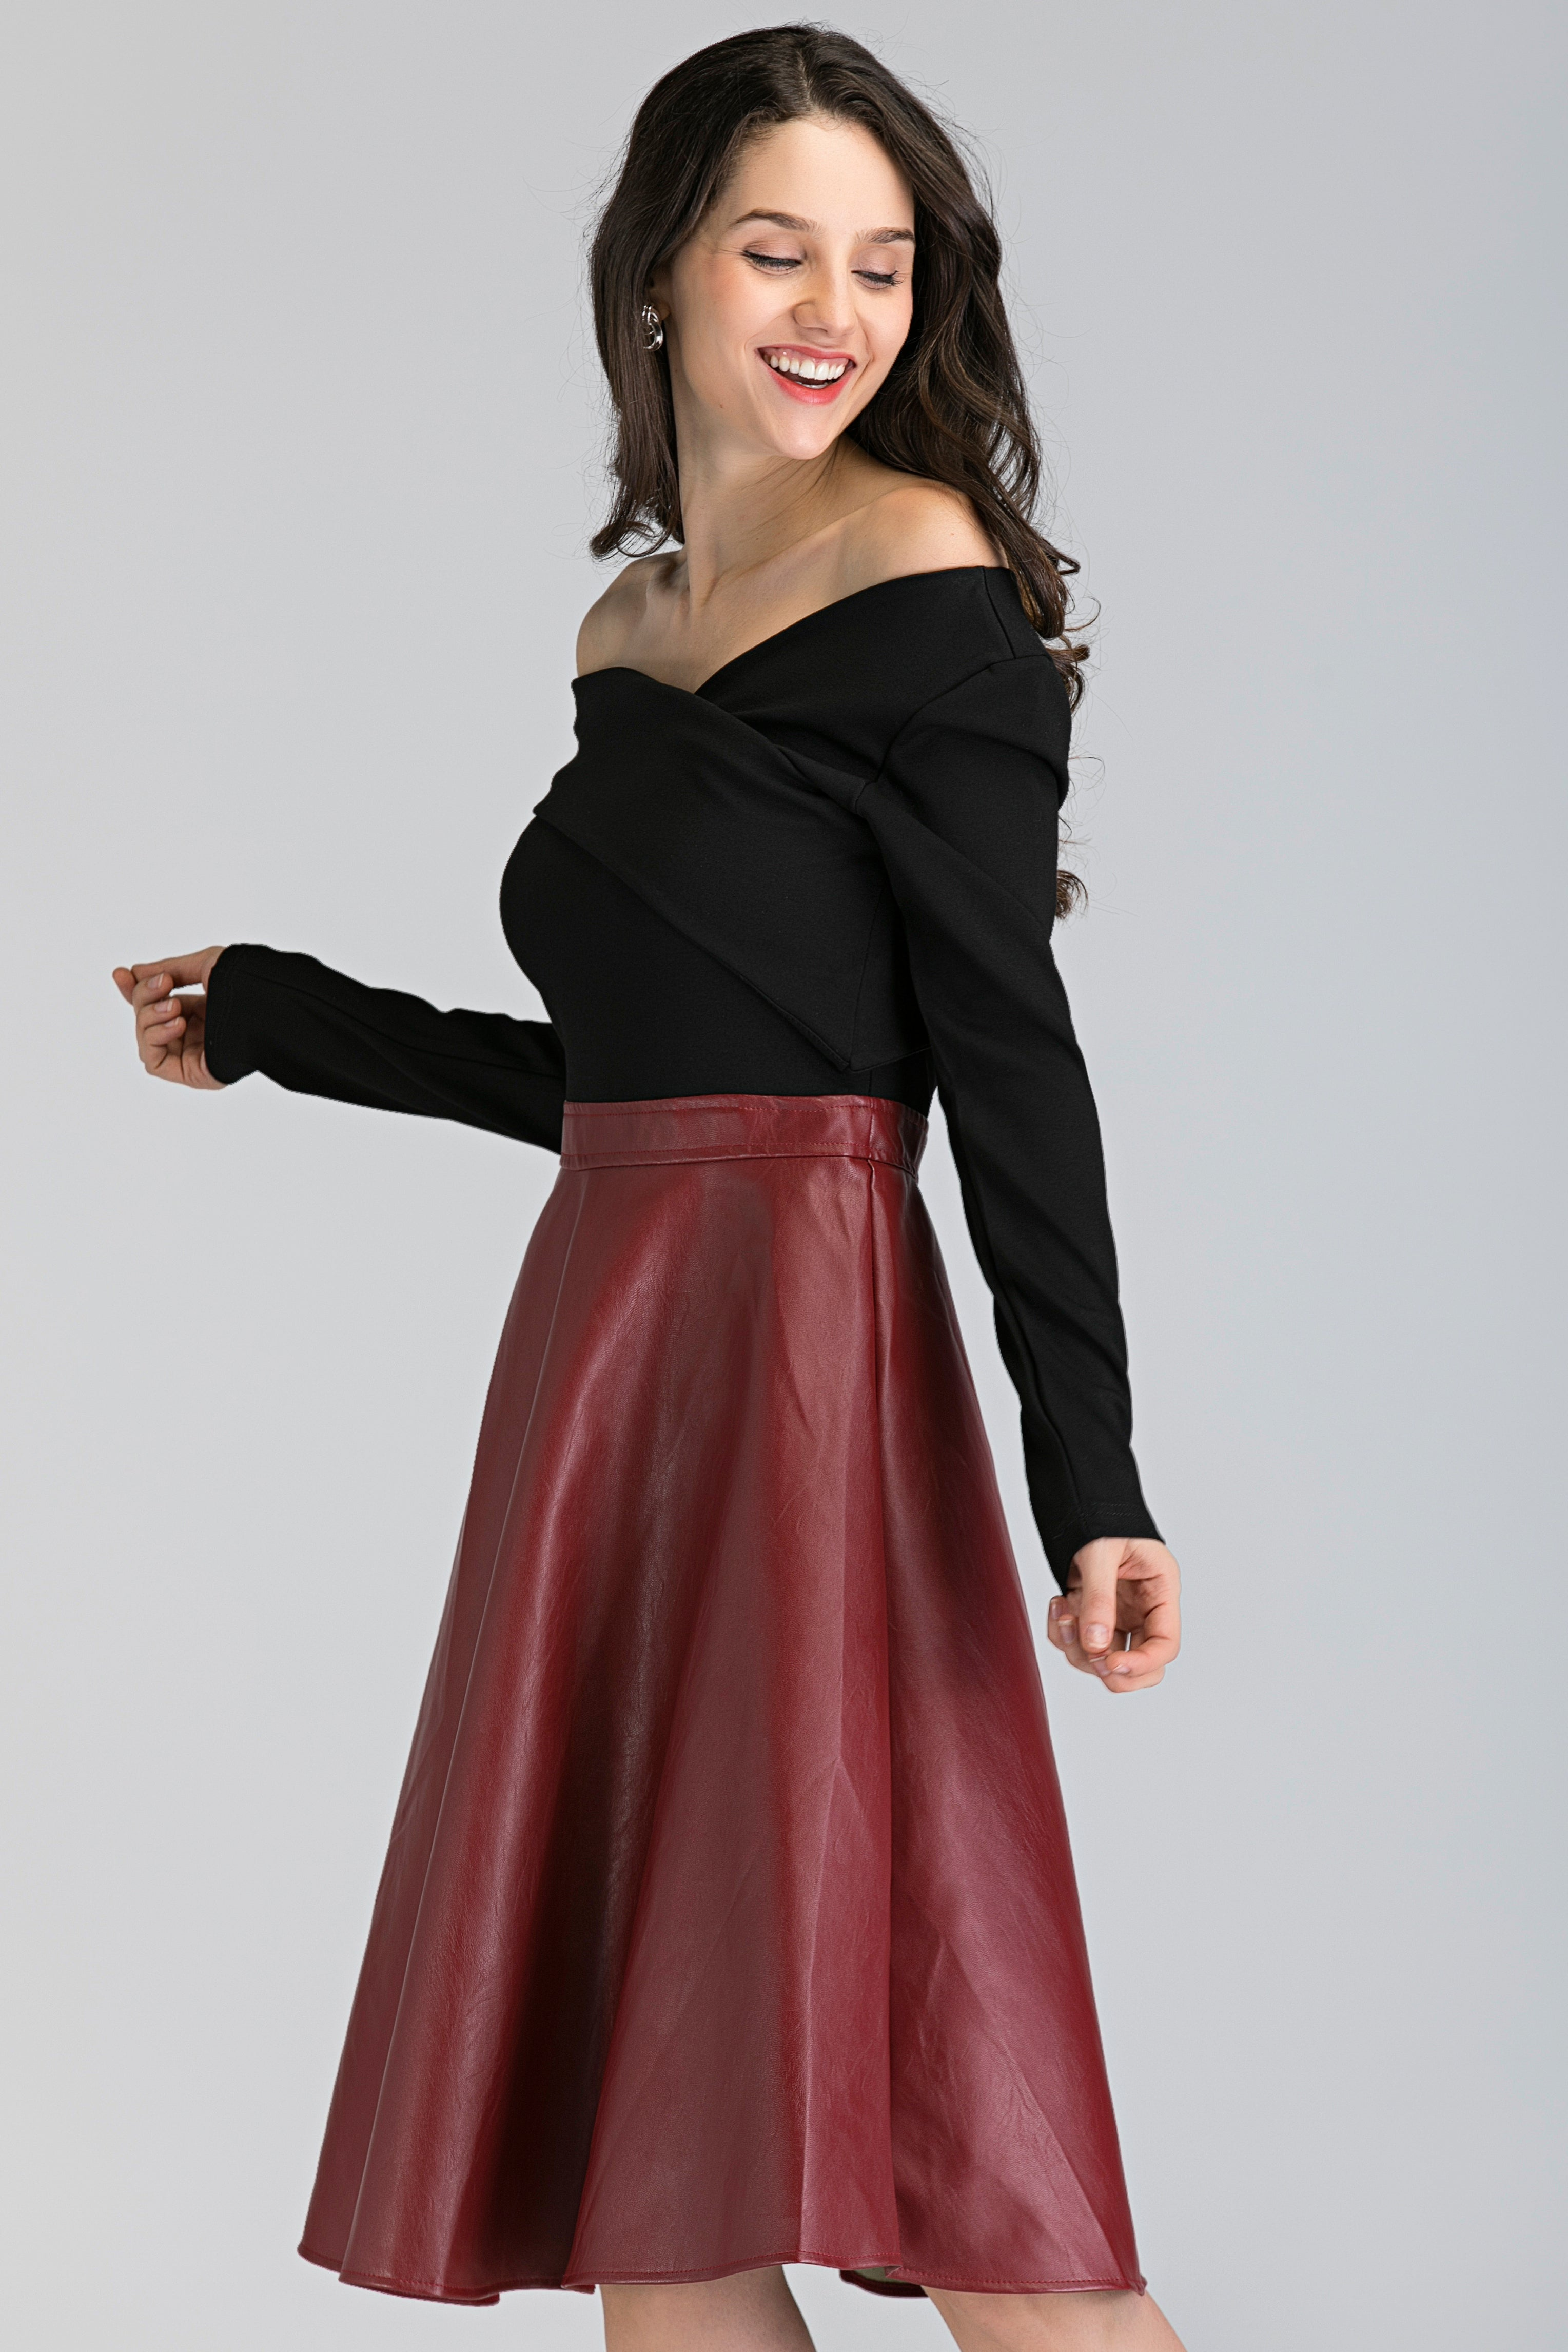 071f4e792bb1 Black and Maroon Faux Leather Skirt Midi Dress – OwnTheLooks